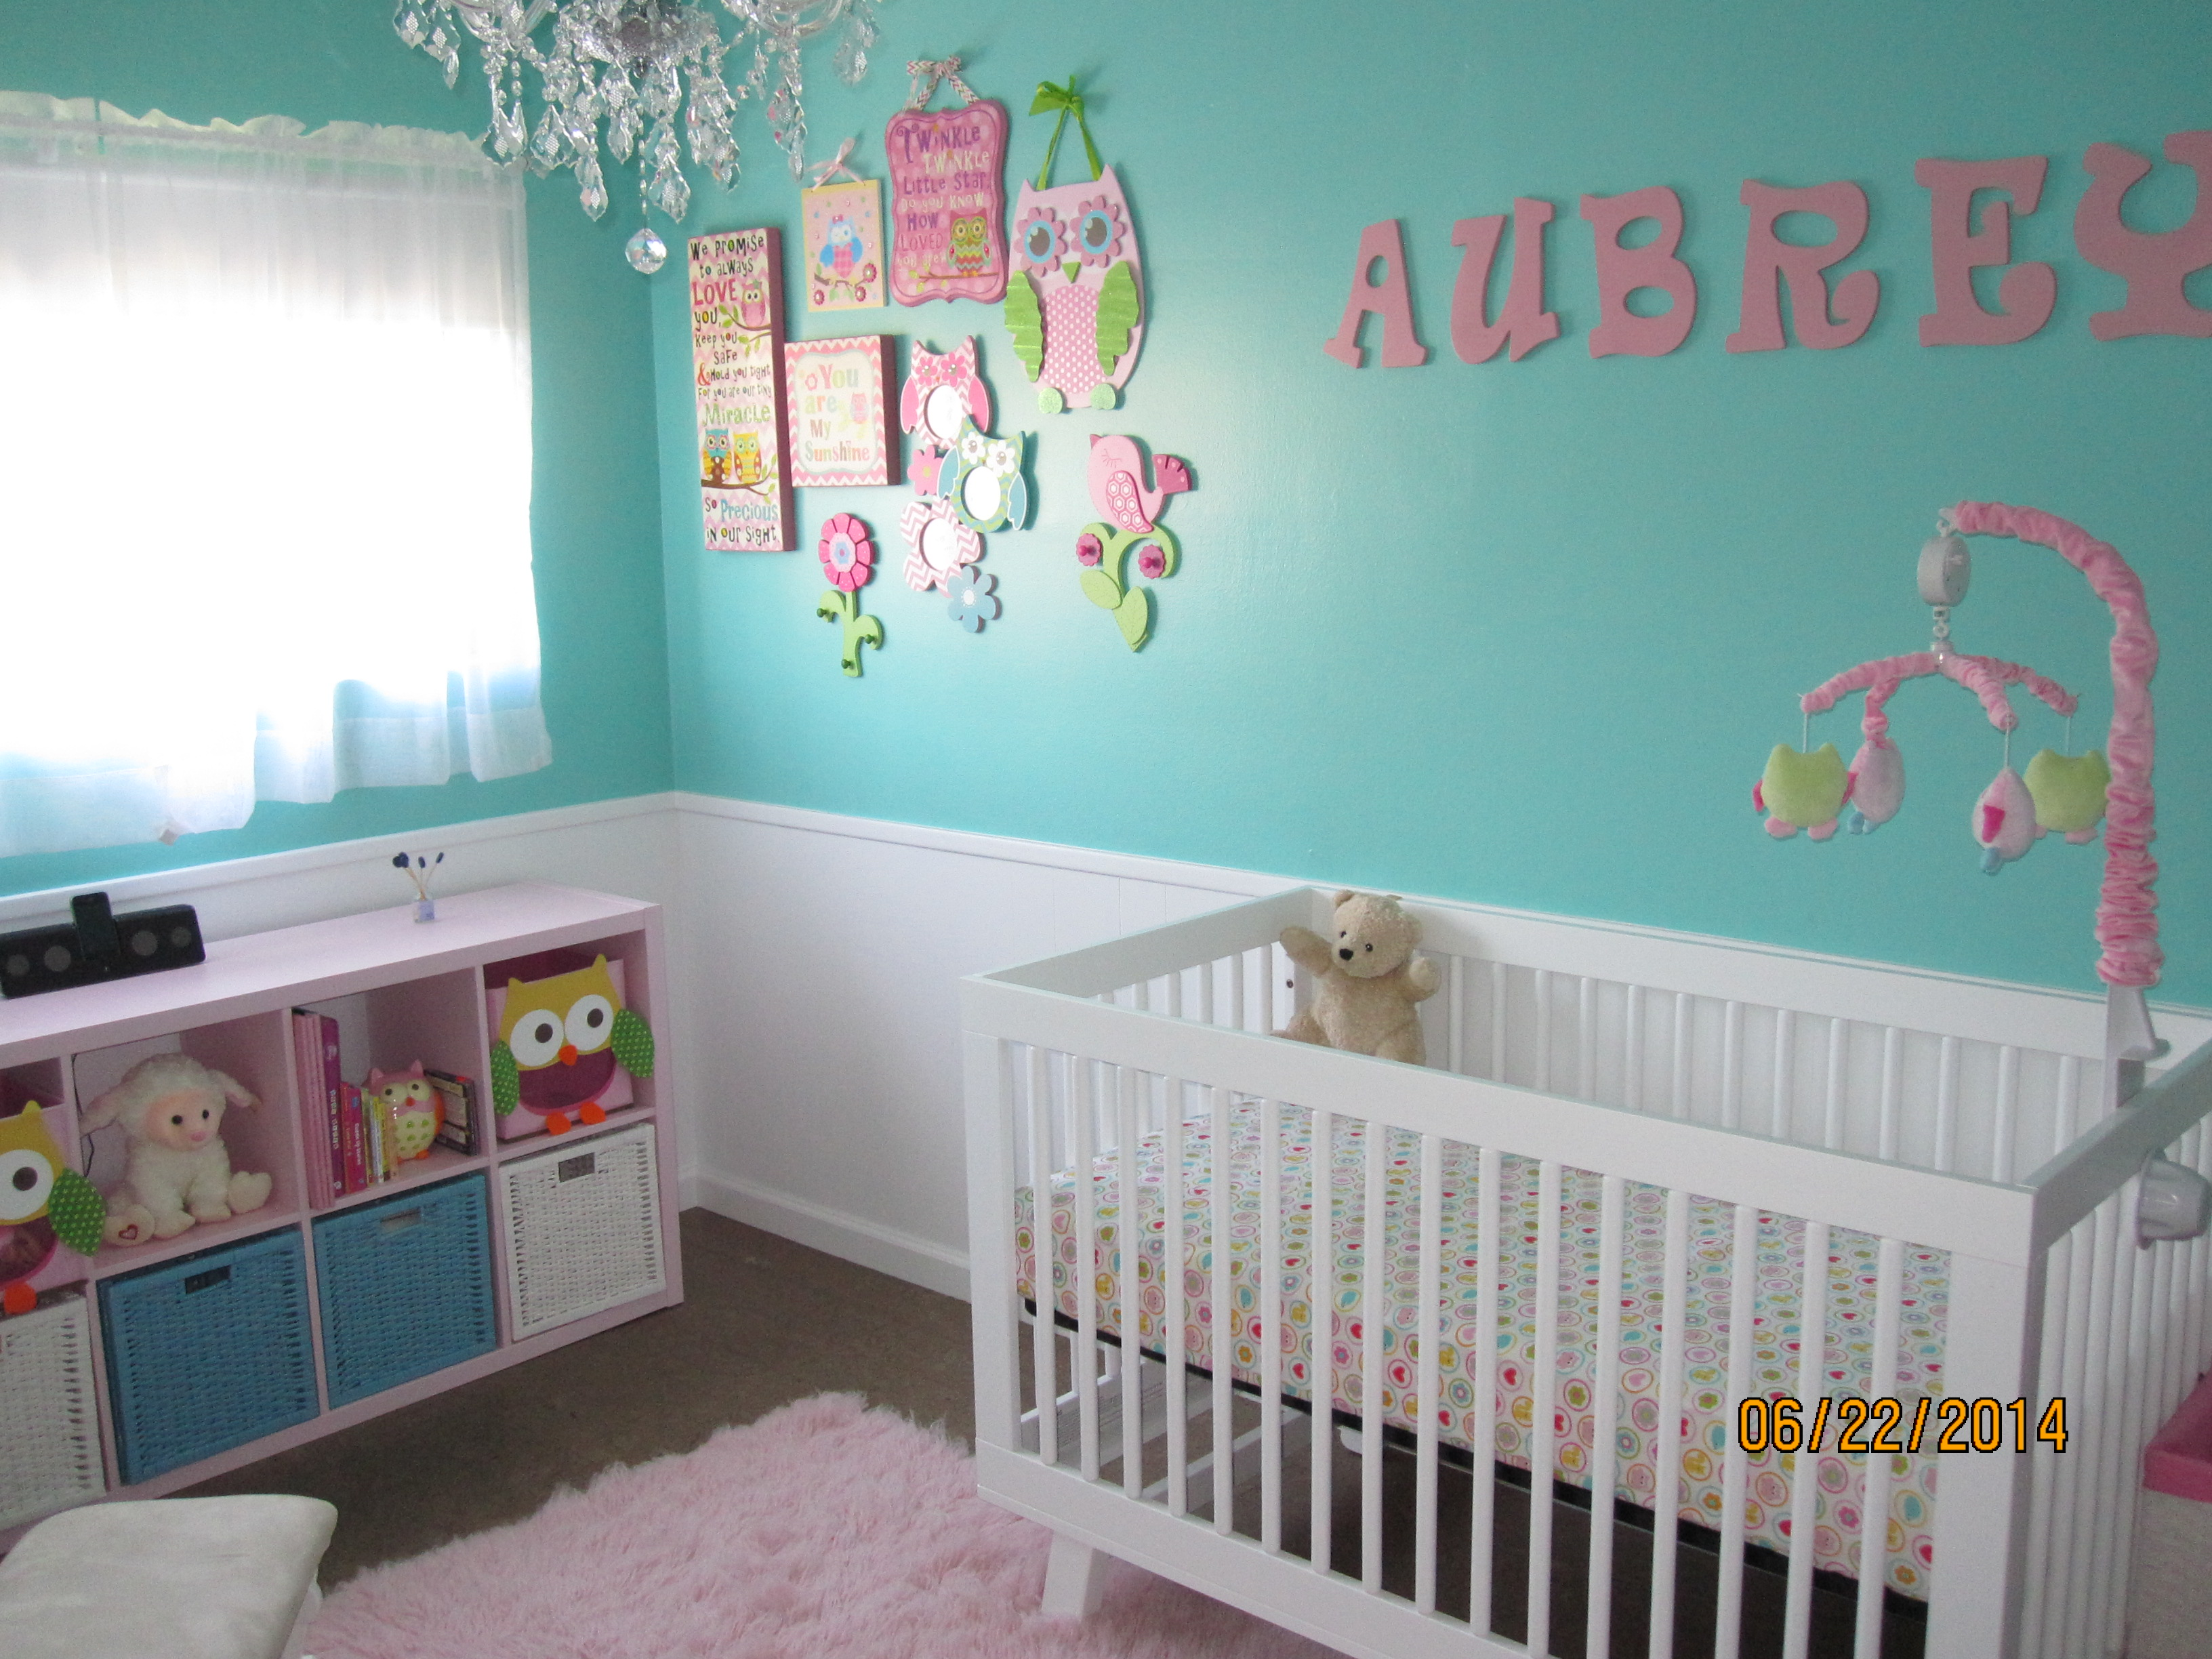 Aubreys Tiffany Blue and Pink Owl Nursery  Project Nursery